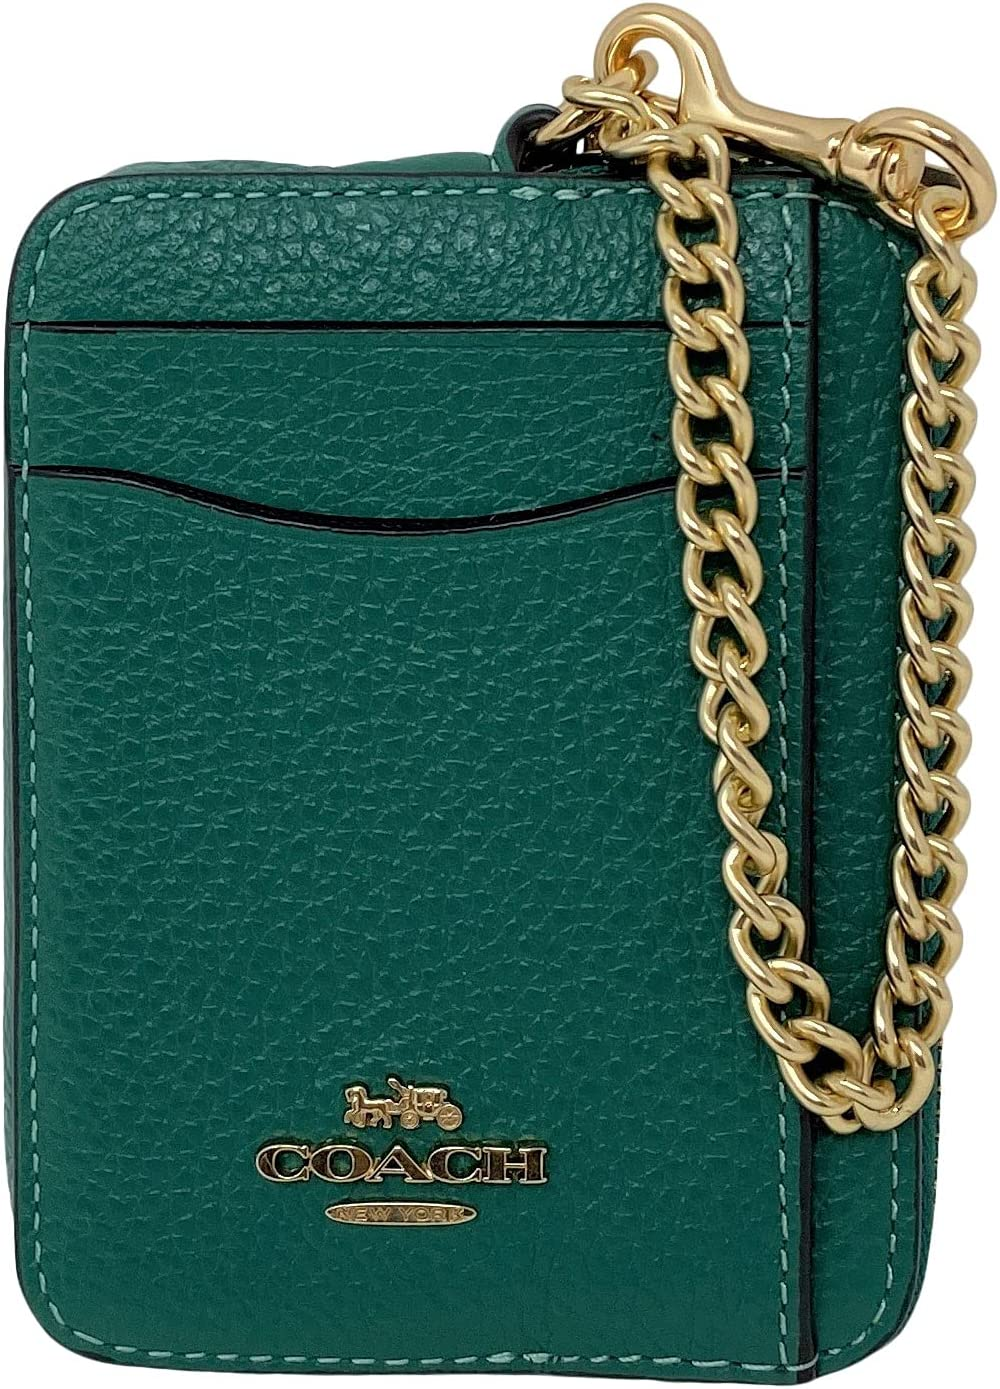 unisex Coach Pebble Leather Zip Card Case No. Style Jade 6303 Bright Challenge the lowest price of Japan